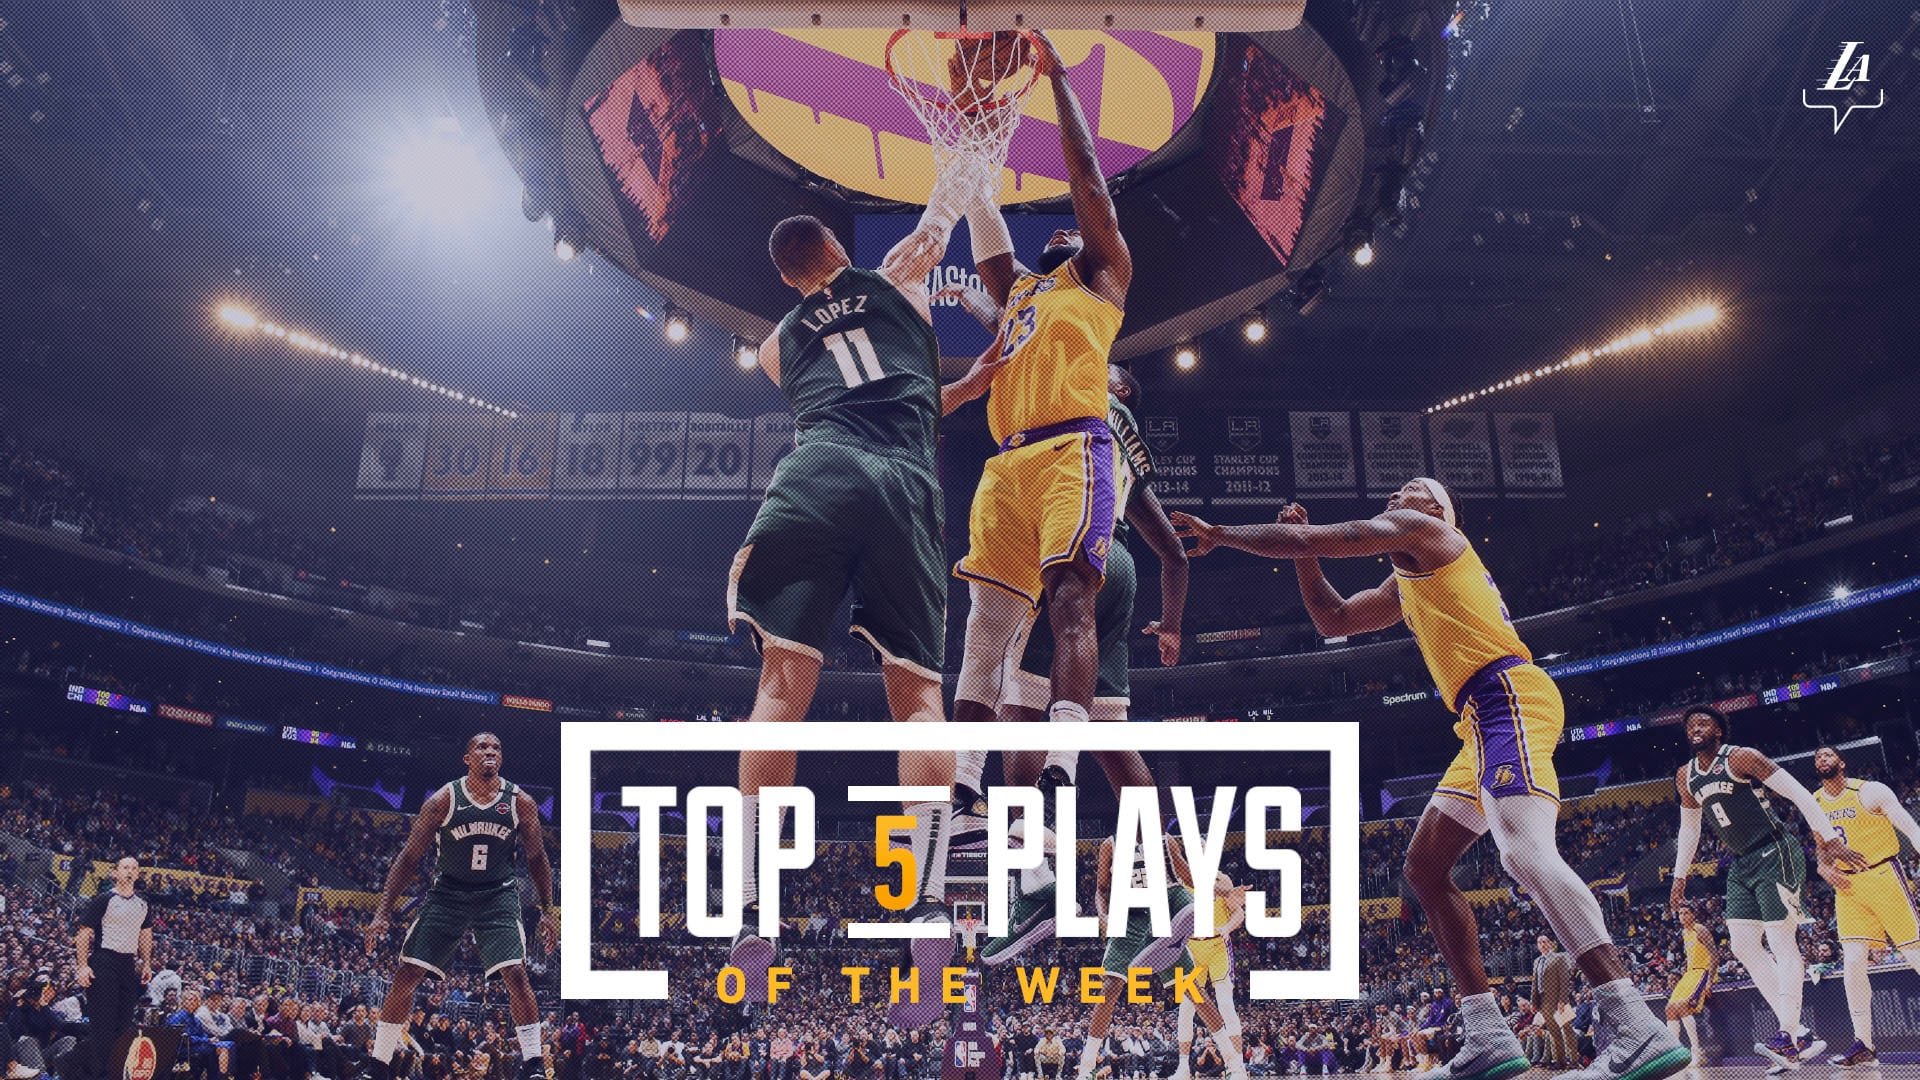 Top Plays of the Week (3/11/20)